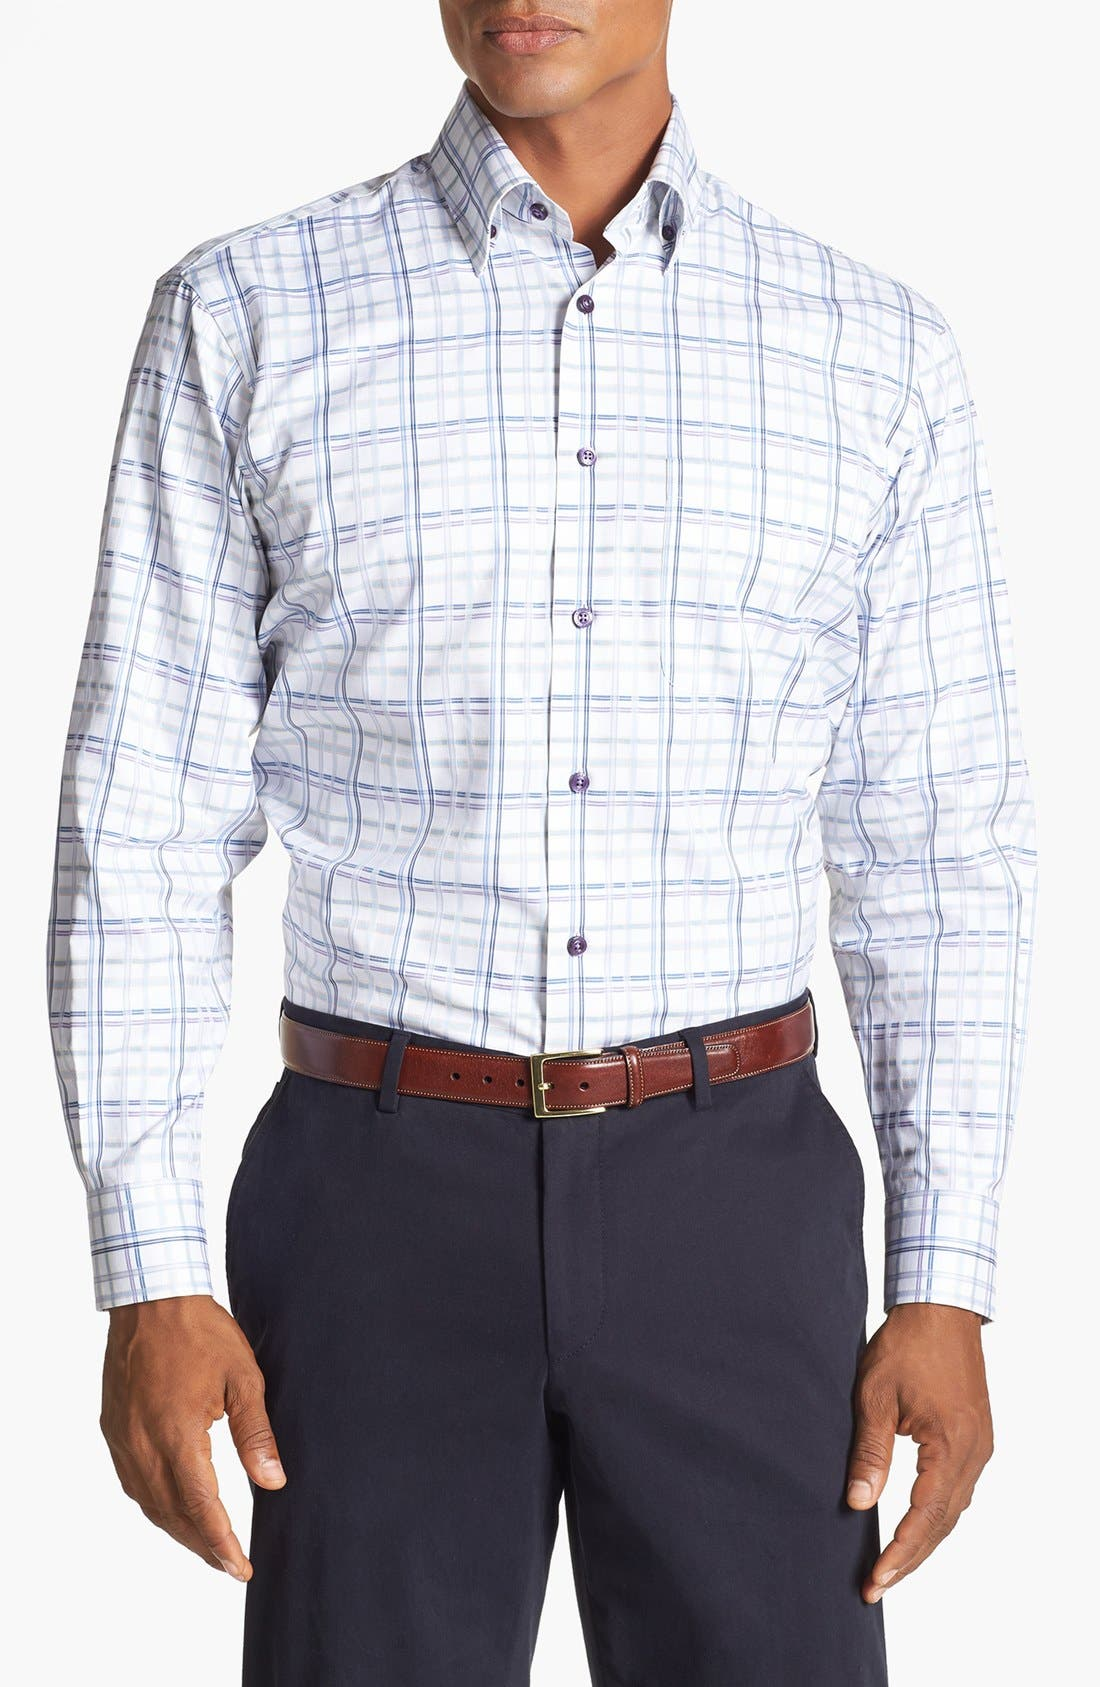 Alternate Image 1 Selected - Robert Talbott Windowpane Plaid Woven Sport Shirt